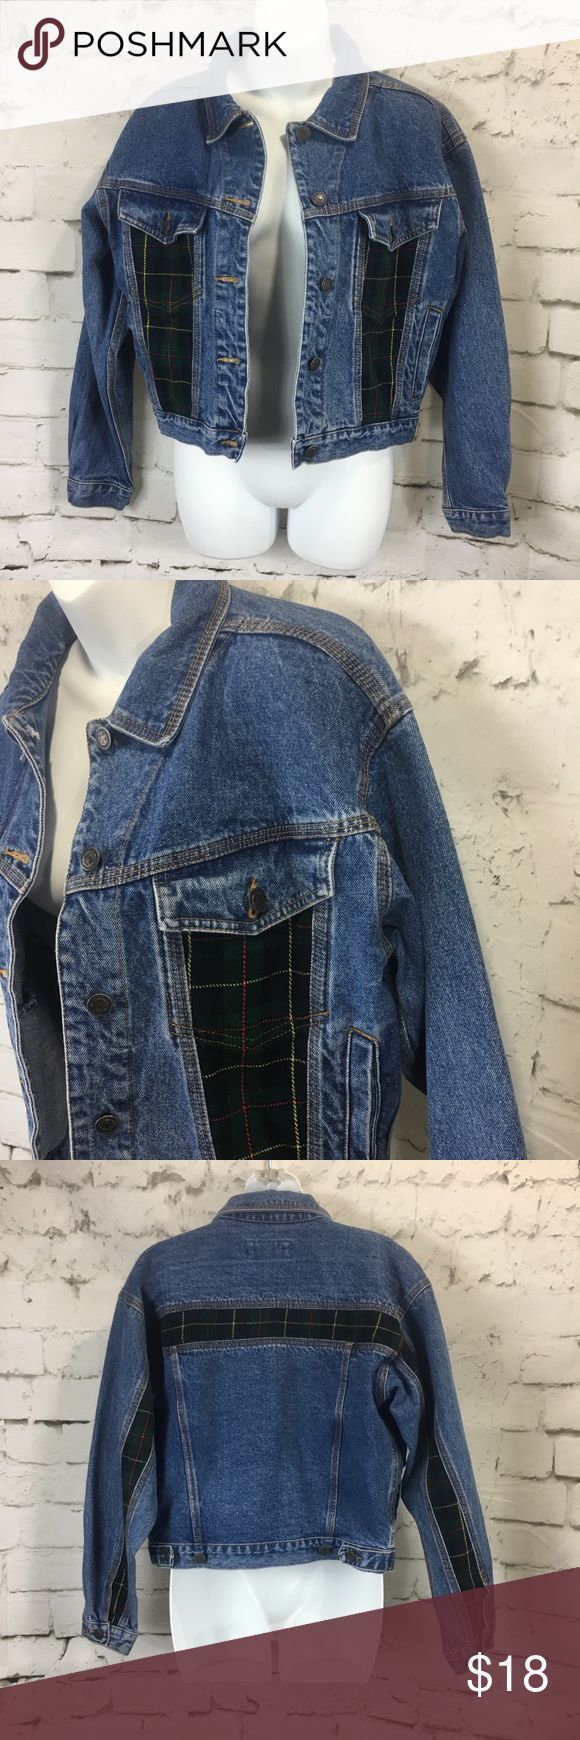 """VTG Nuovo County Seat Plaid Jean Trucker Jacket VTG Nuovo County Seat Denim Tartan Plaid Jean Trucker Jacket Womens Sz S Loose boyfriend fit Nice Pre-Owned Condition, No Stains, No Holes  *Measurements are taken with garments laid flat and unstretched, please compare to your own garments for best fit*  Chest laid flat from pit to pit: 21"""" across  Length from shoulder to hem: 19""""  B2 County Seat Jackets & Coats Jean Jackets"""